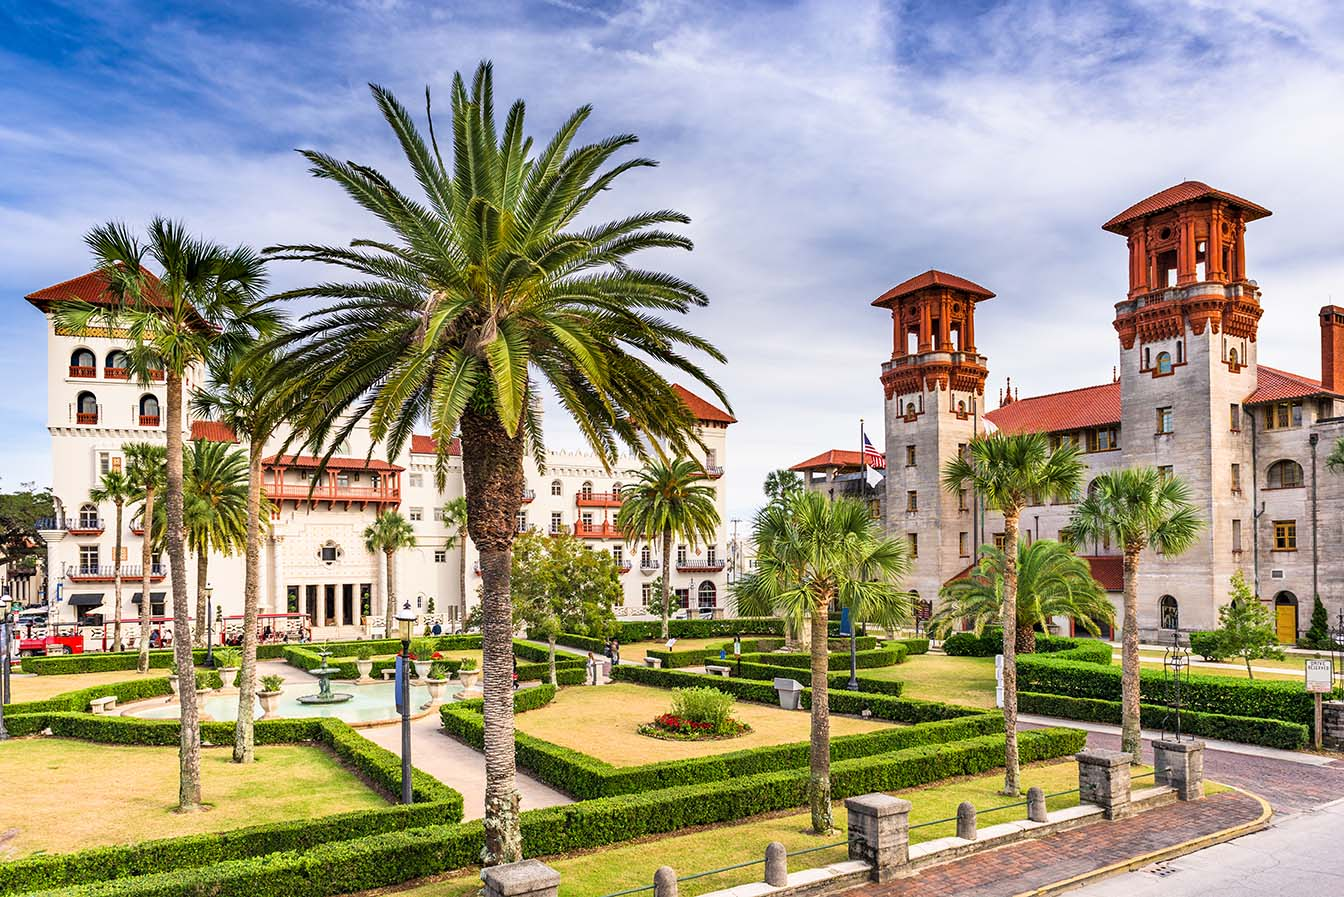 St. Augustine, Florida, USA city hall and Alcazar Courtyard.